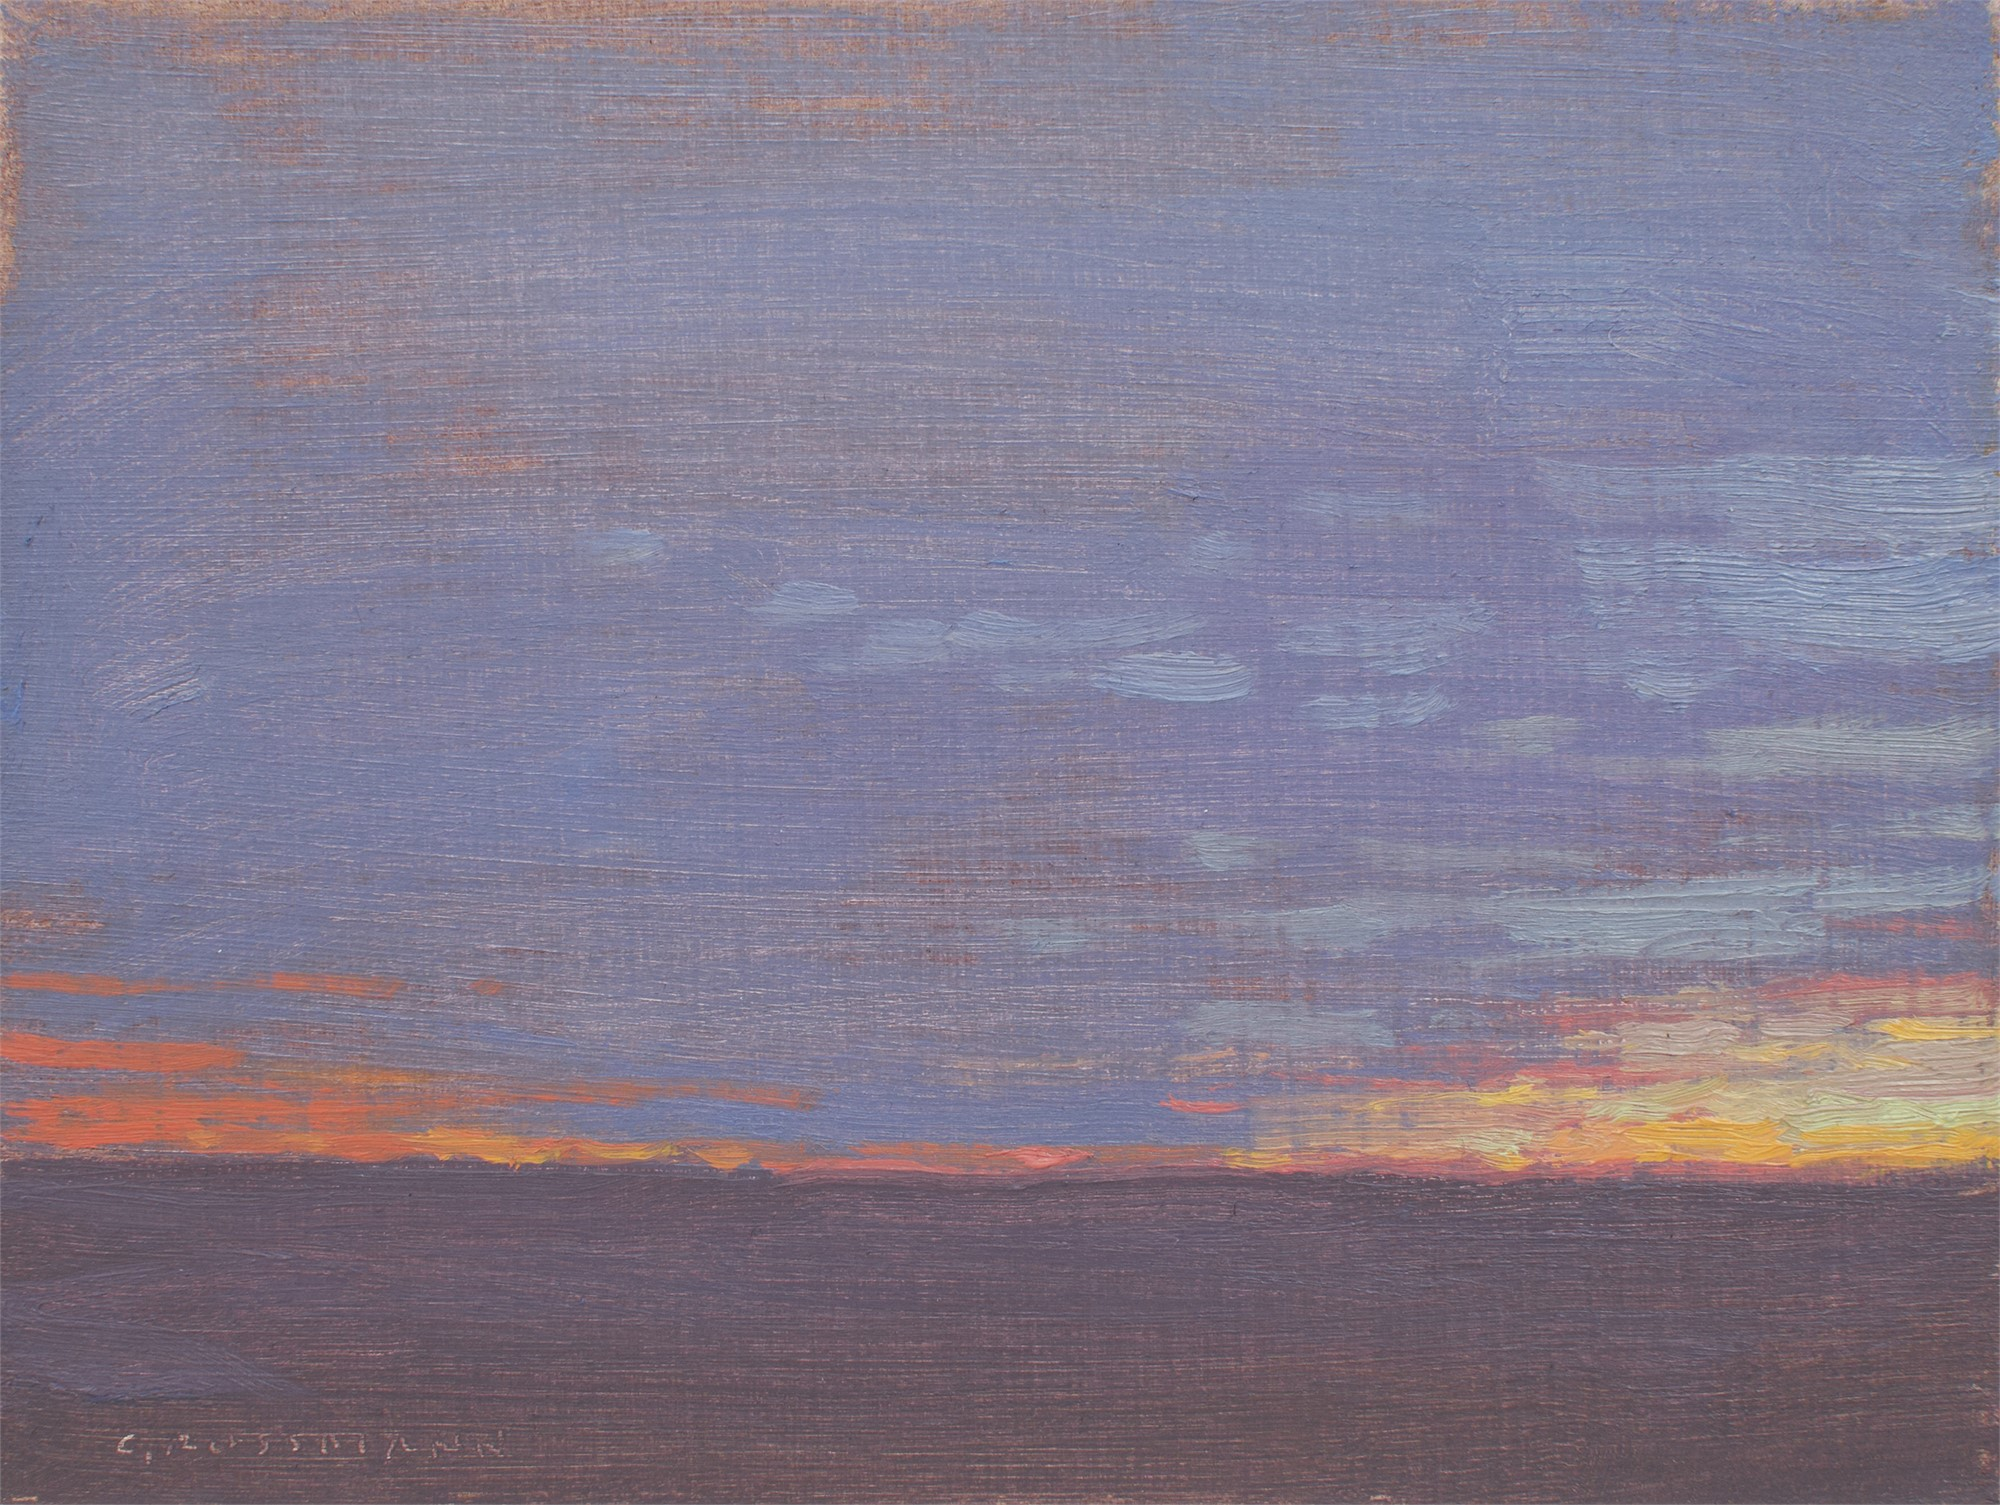 Winter Solstice Dusk by David Grossmann